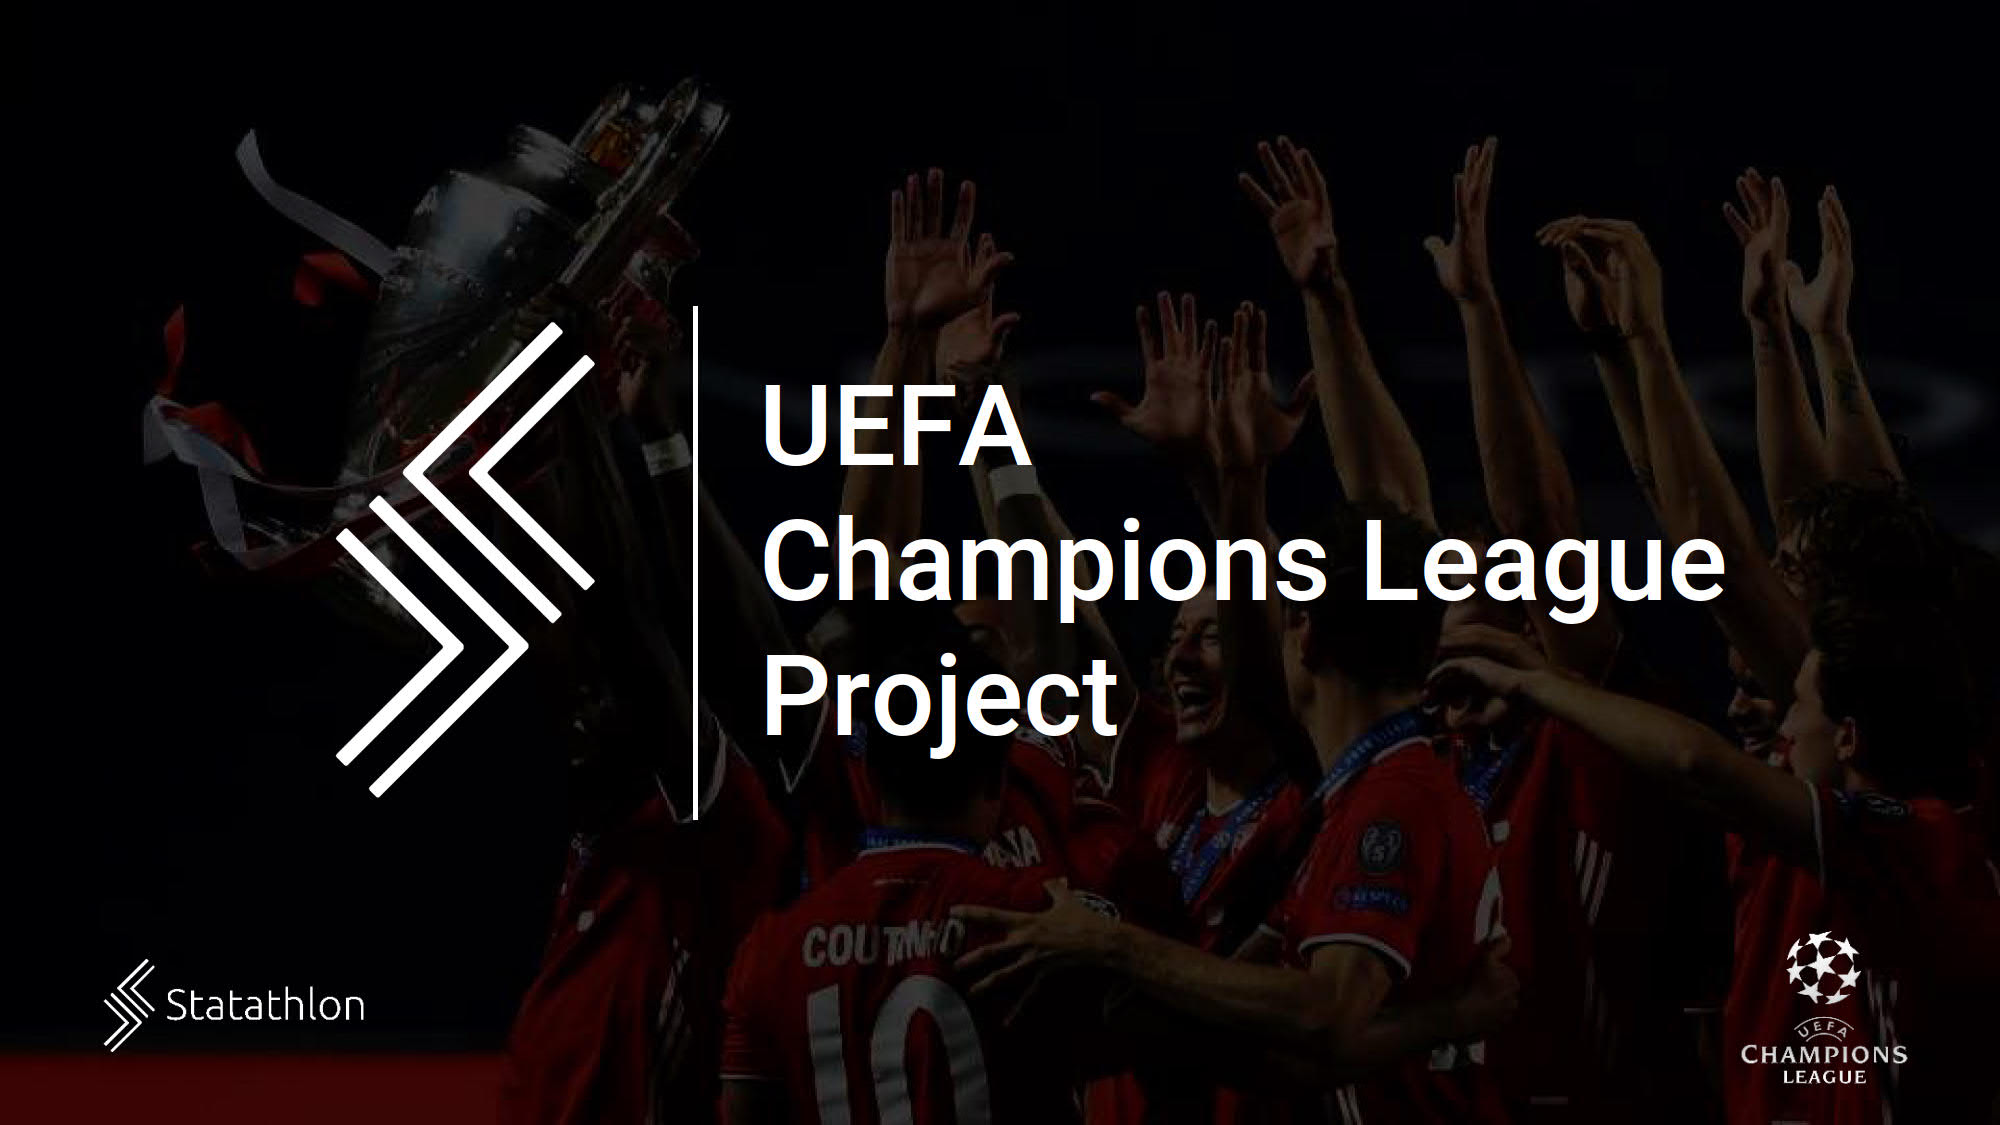 UEFA Champions League Project Image